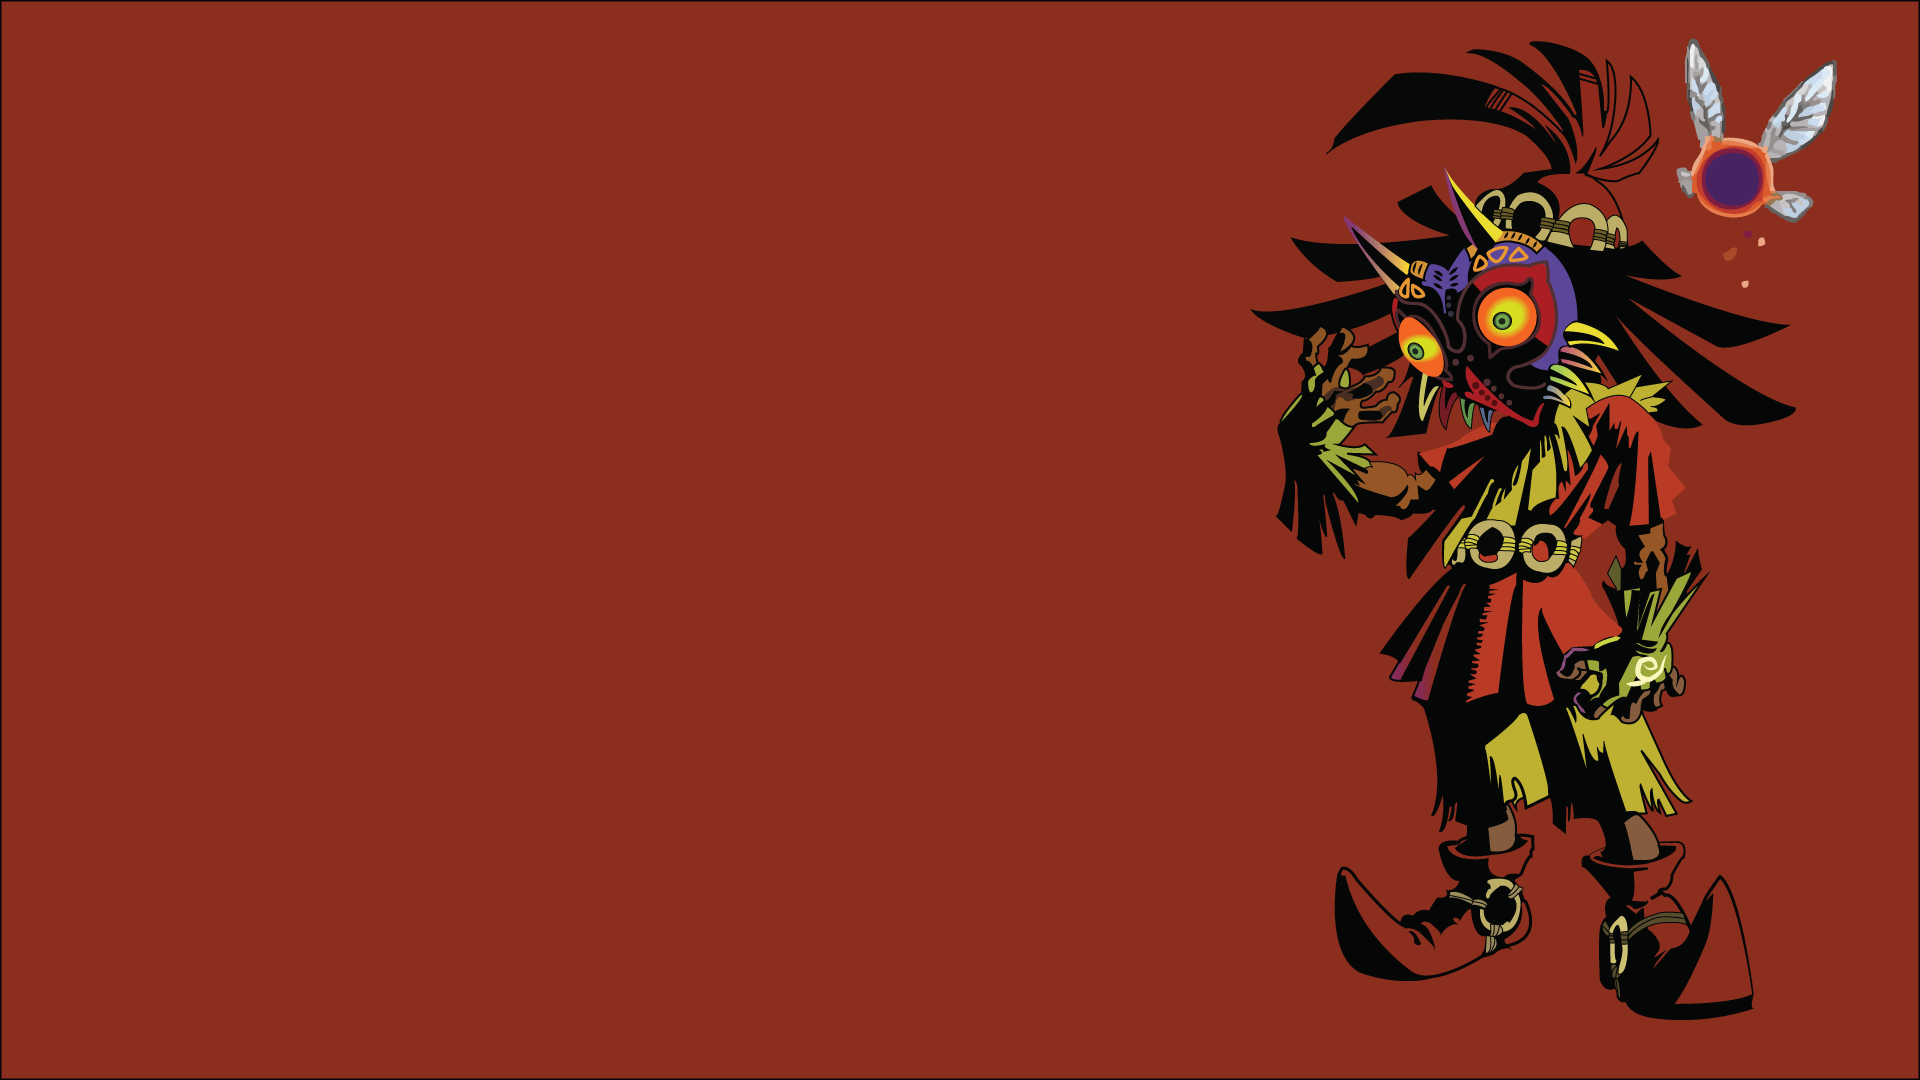 Skull Kid Wallpaper: Zelda Majora's Mask 3DS Wallpaper